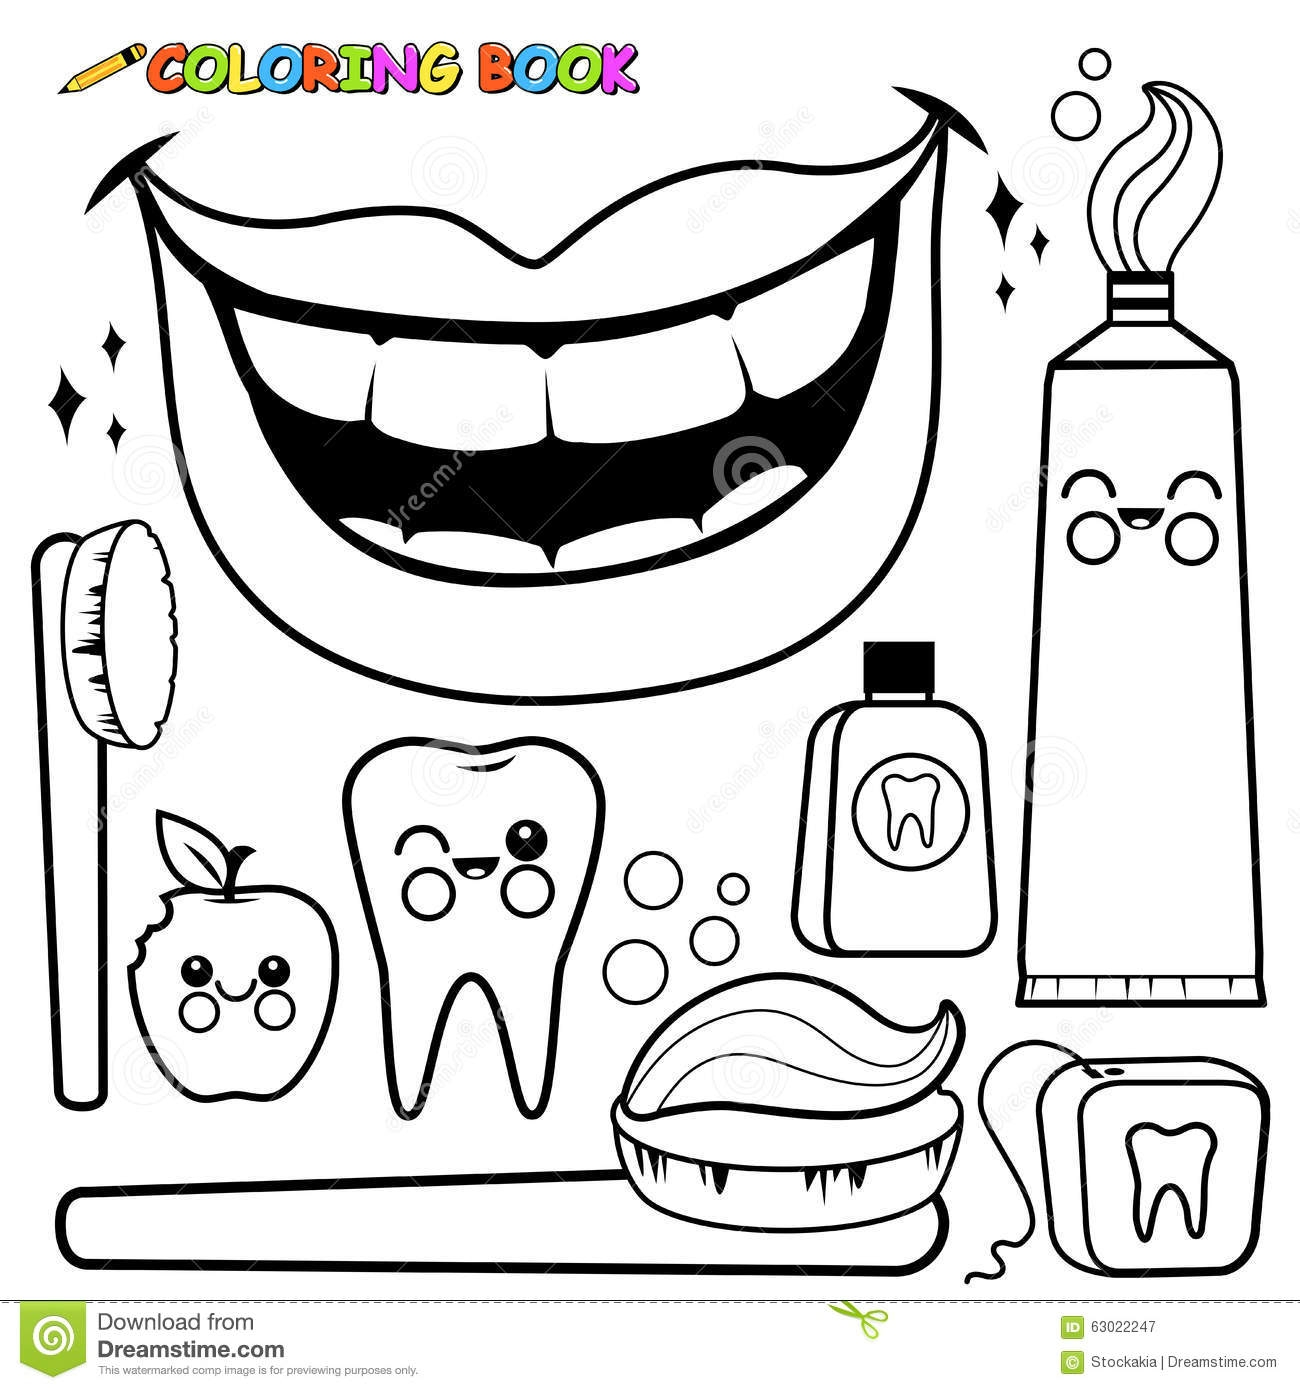 Toothbrush Coloring Page At Getcolorings